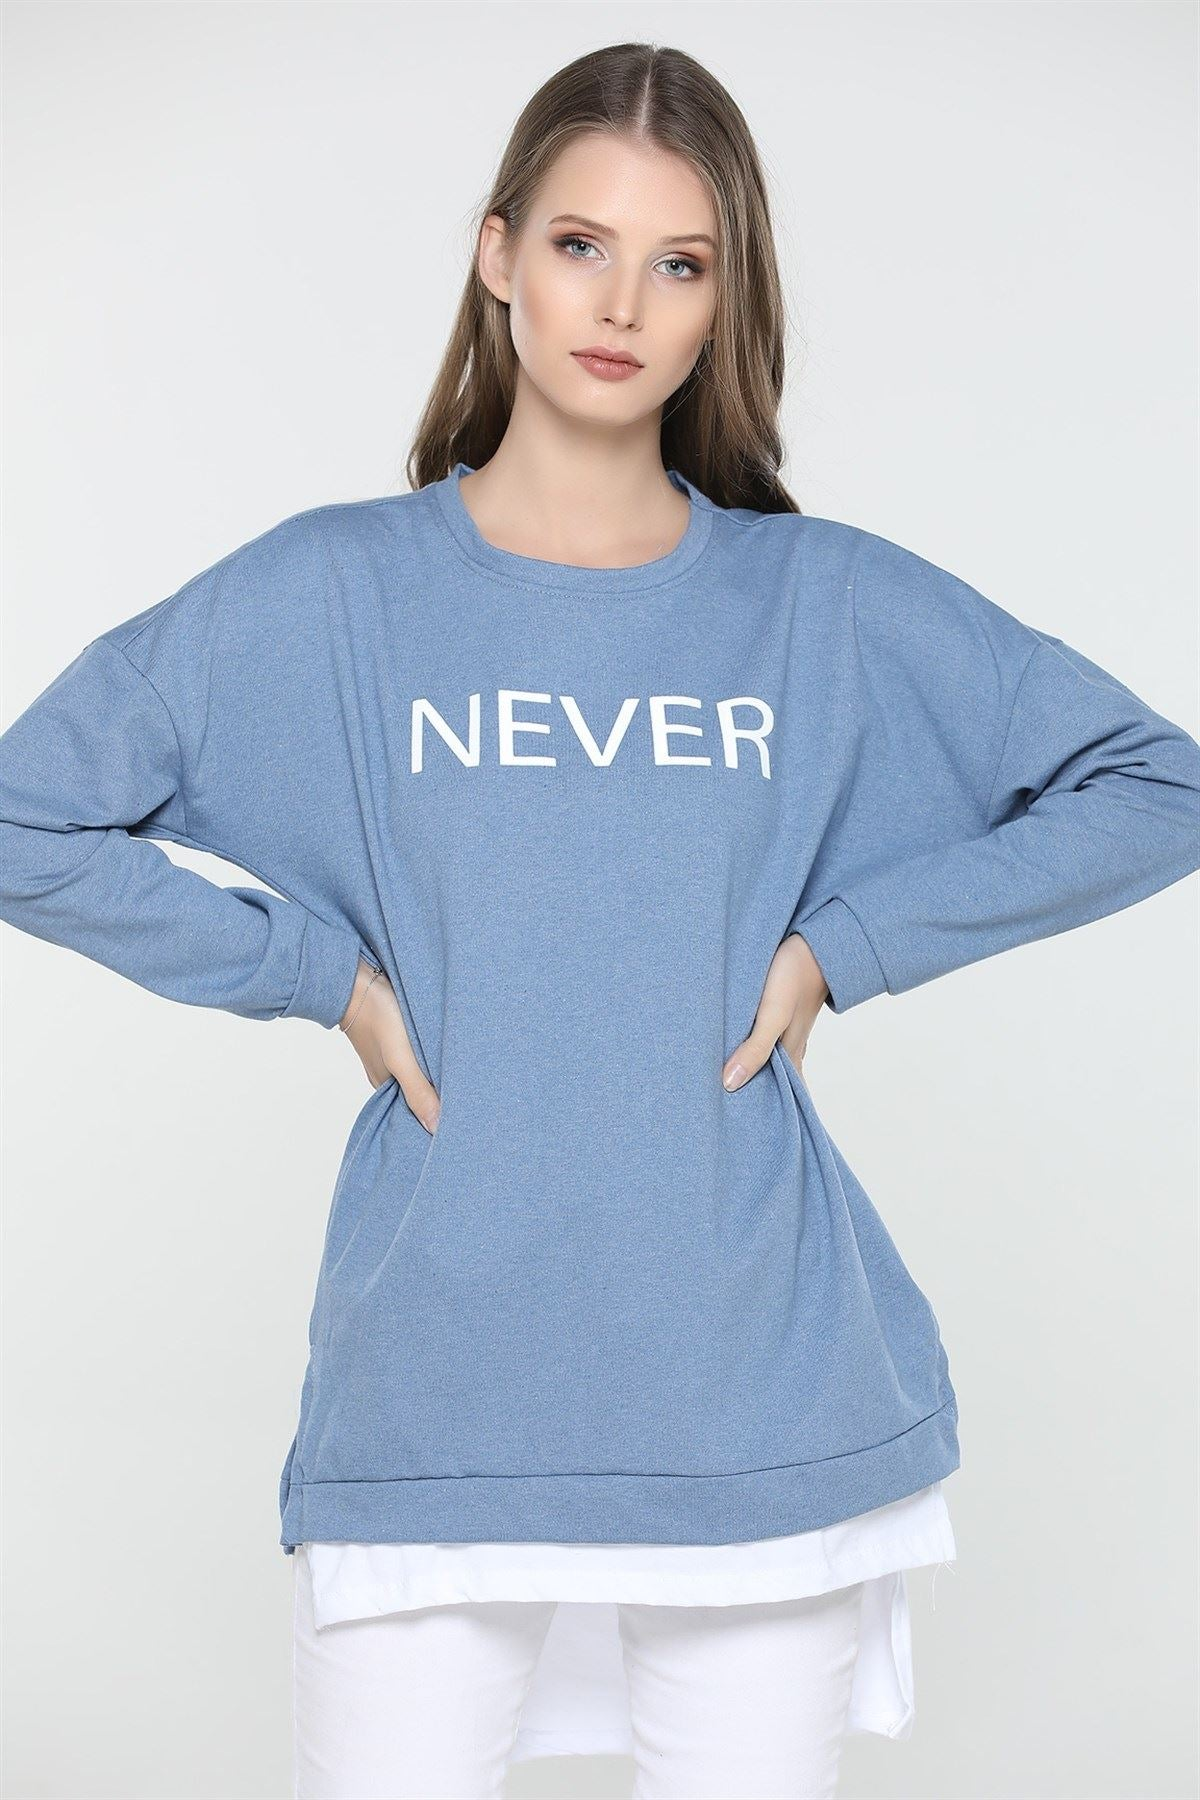 Women's Long Sleeves Printed Sweatshirt